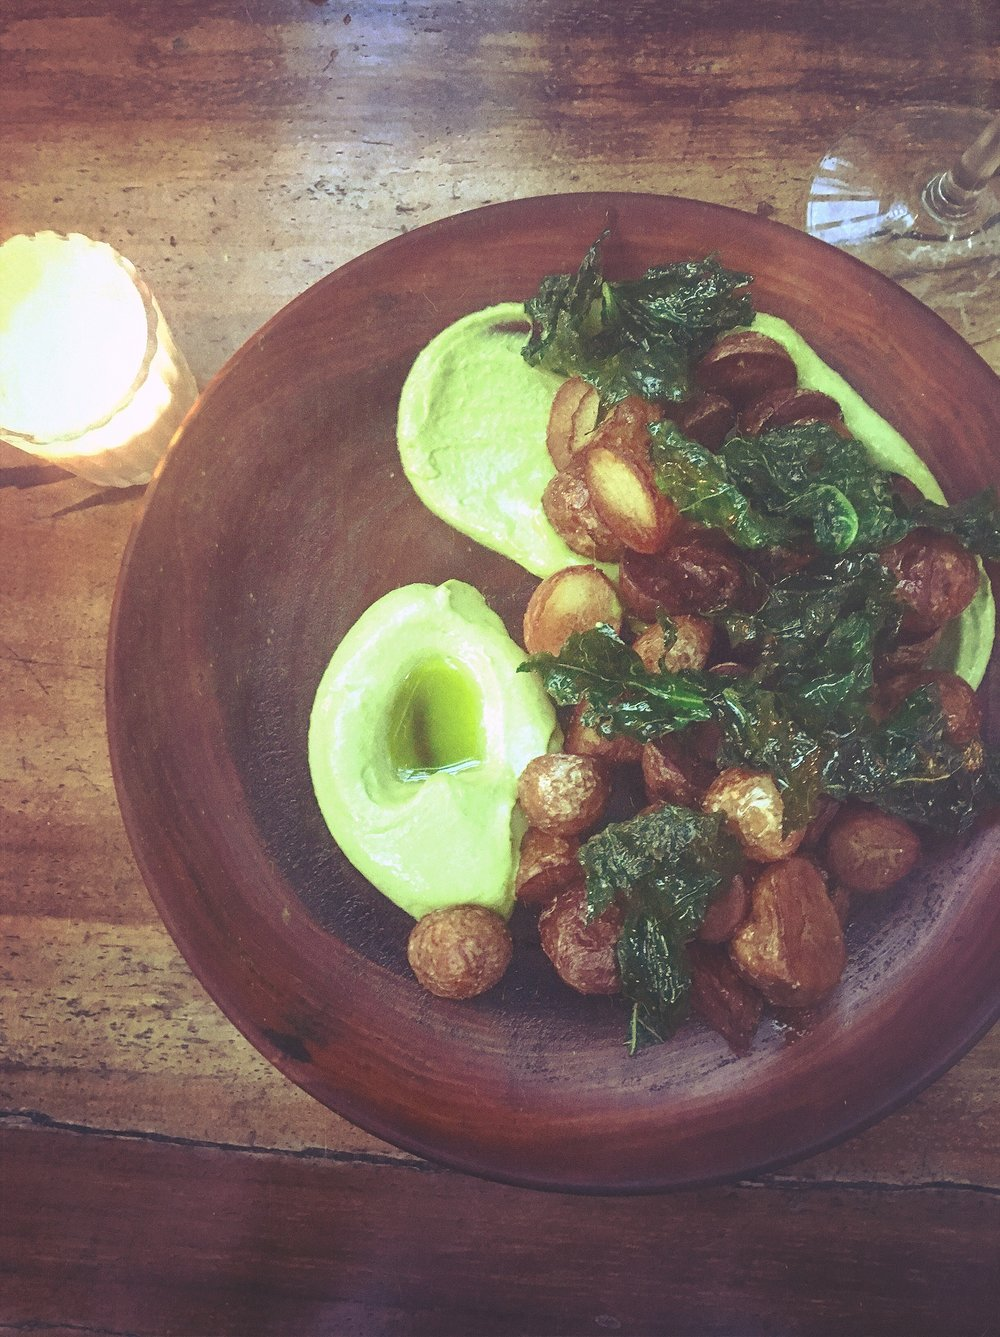 Roasted Potatoes + Kale @ Arca